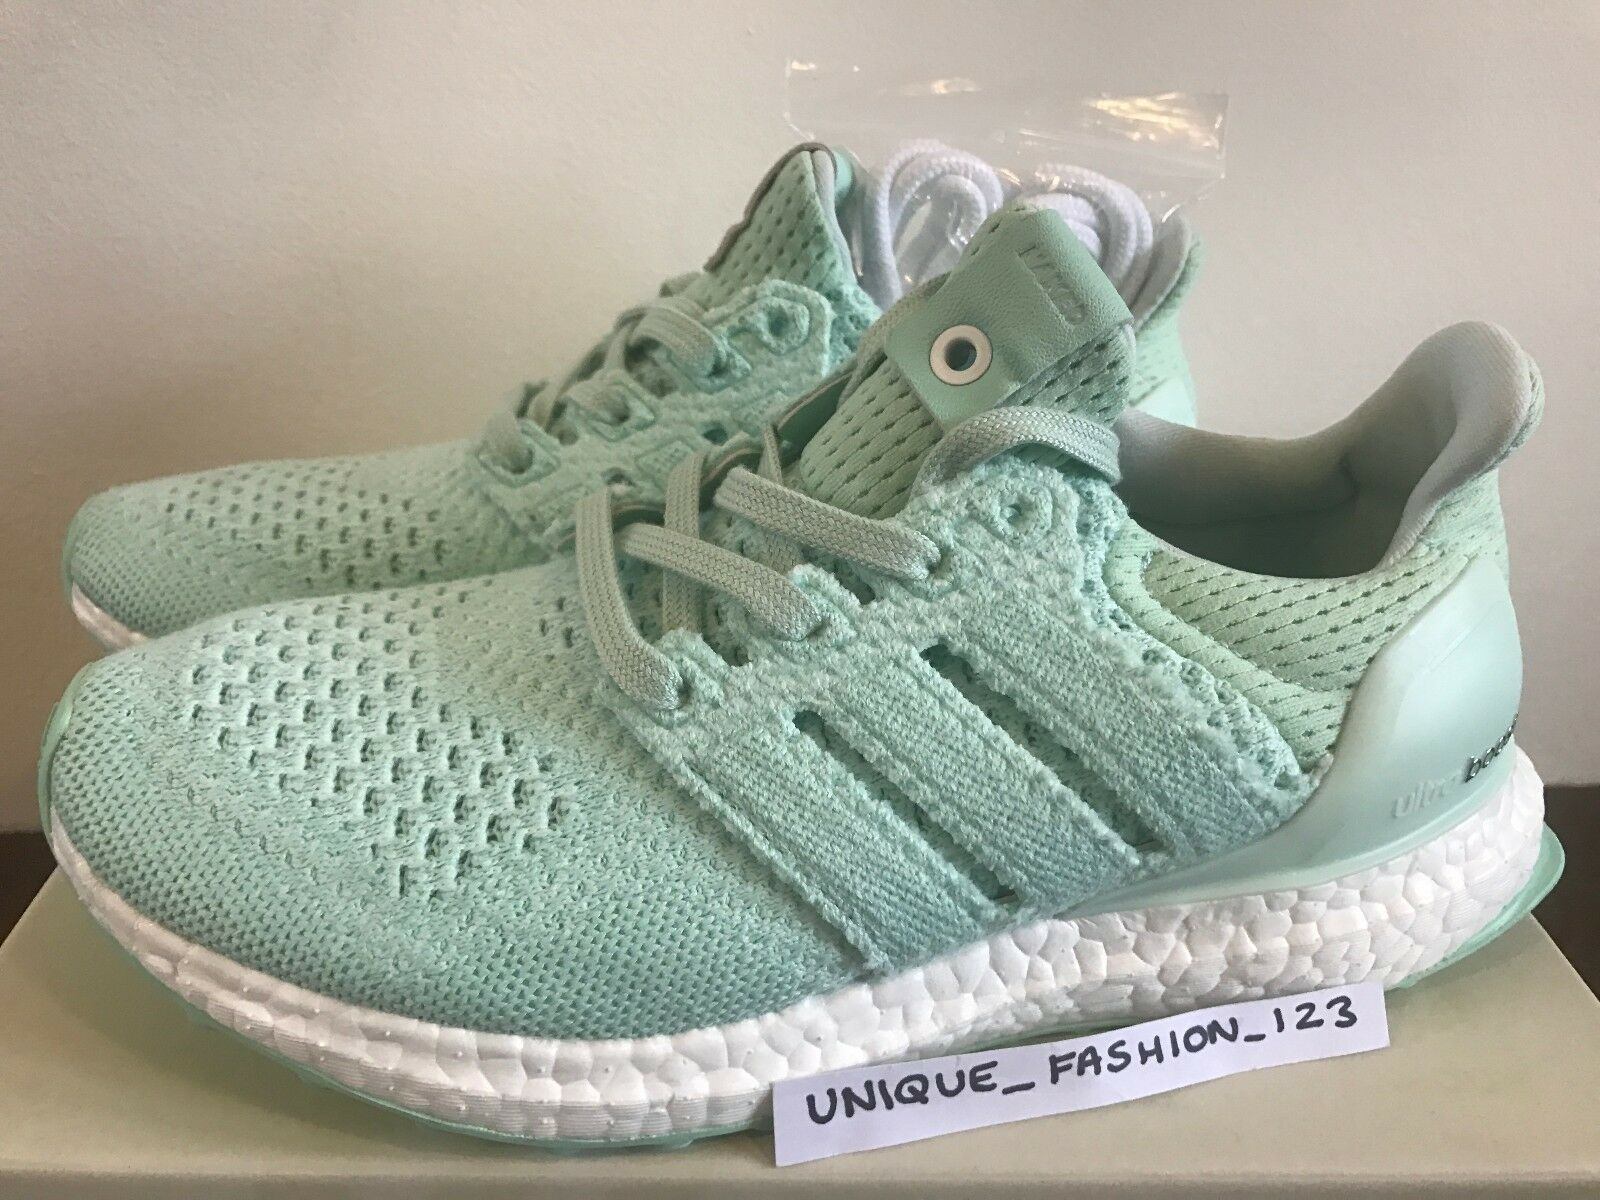 ADIDAS CONSORTIUM X NAKED 7 ULTRA BOOST4 5 6 7 NAKED 8 9 10 11 NMD WAVES PACK MINT 863424